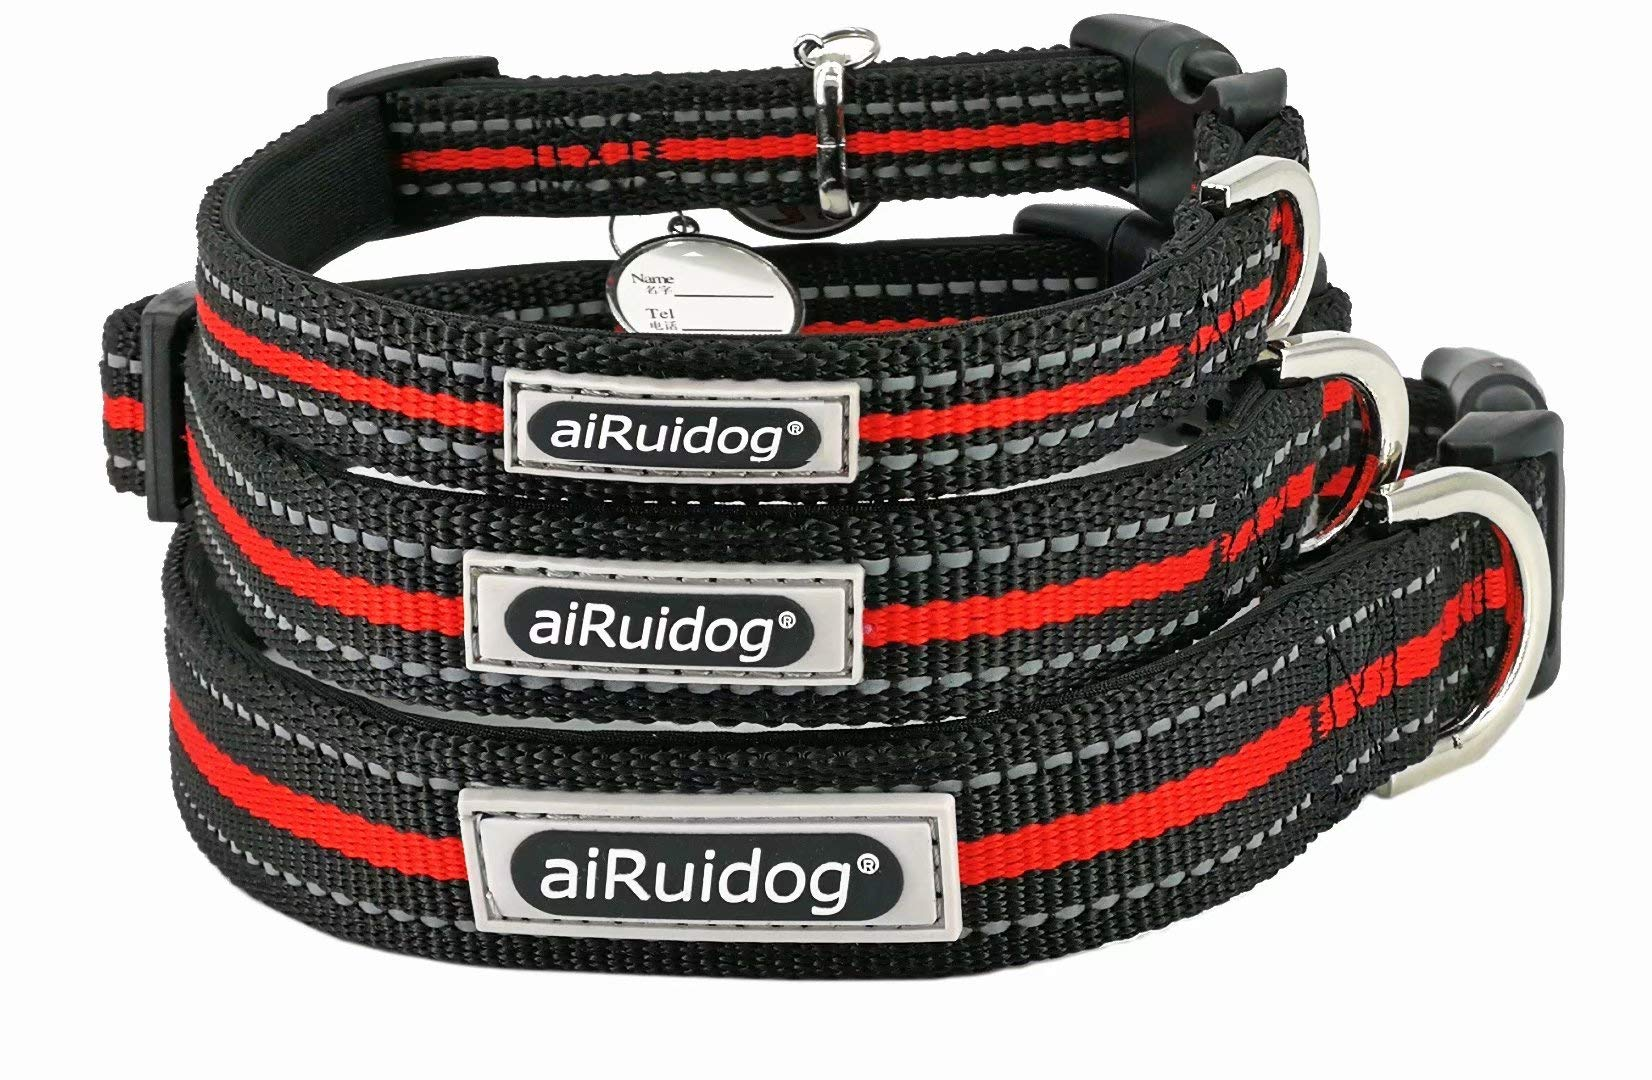 Dog Training Collar Reflective - Heavy Duty Nylon Lighted Wide Adjustable Snap Large, Meduim or Small Dog Collar for Male Female Pet Dog with Buckle and Soft Filler, Black and Red